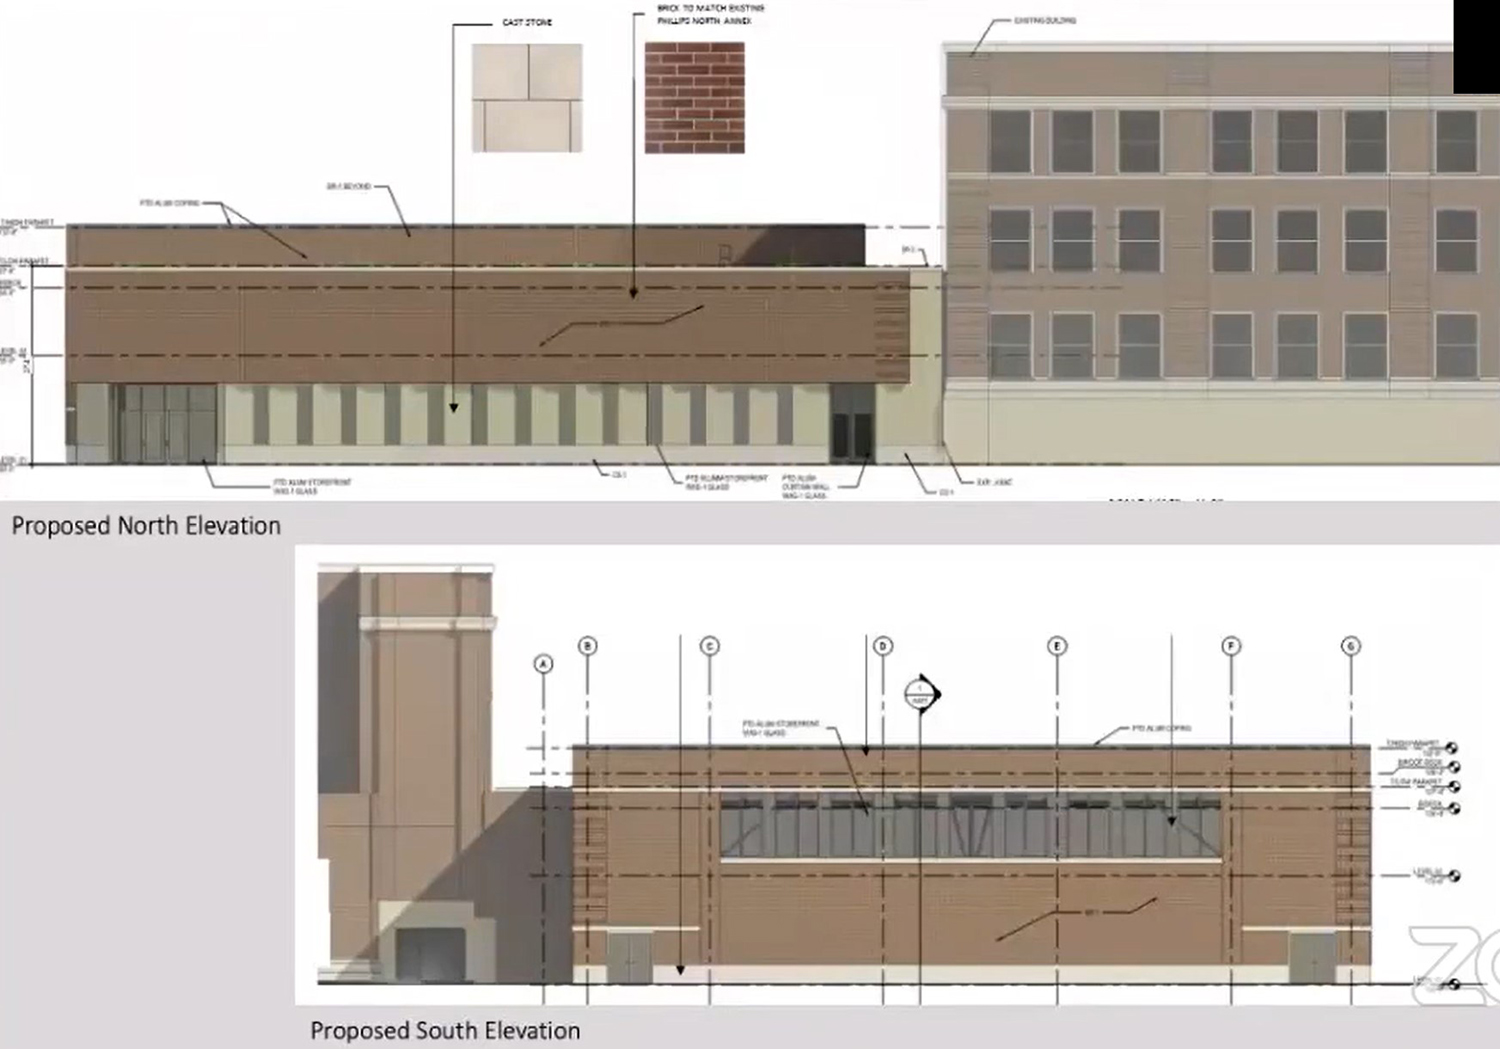 South and North Elevations for Addition at 244 E Pershing Road. Drawings by Moody Nolan